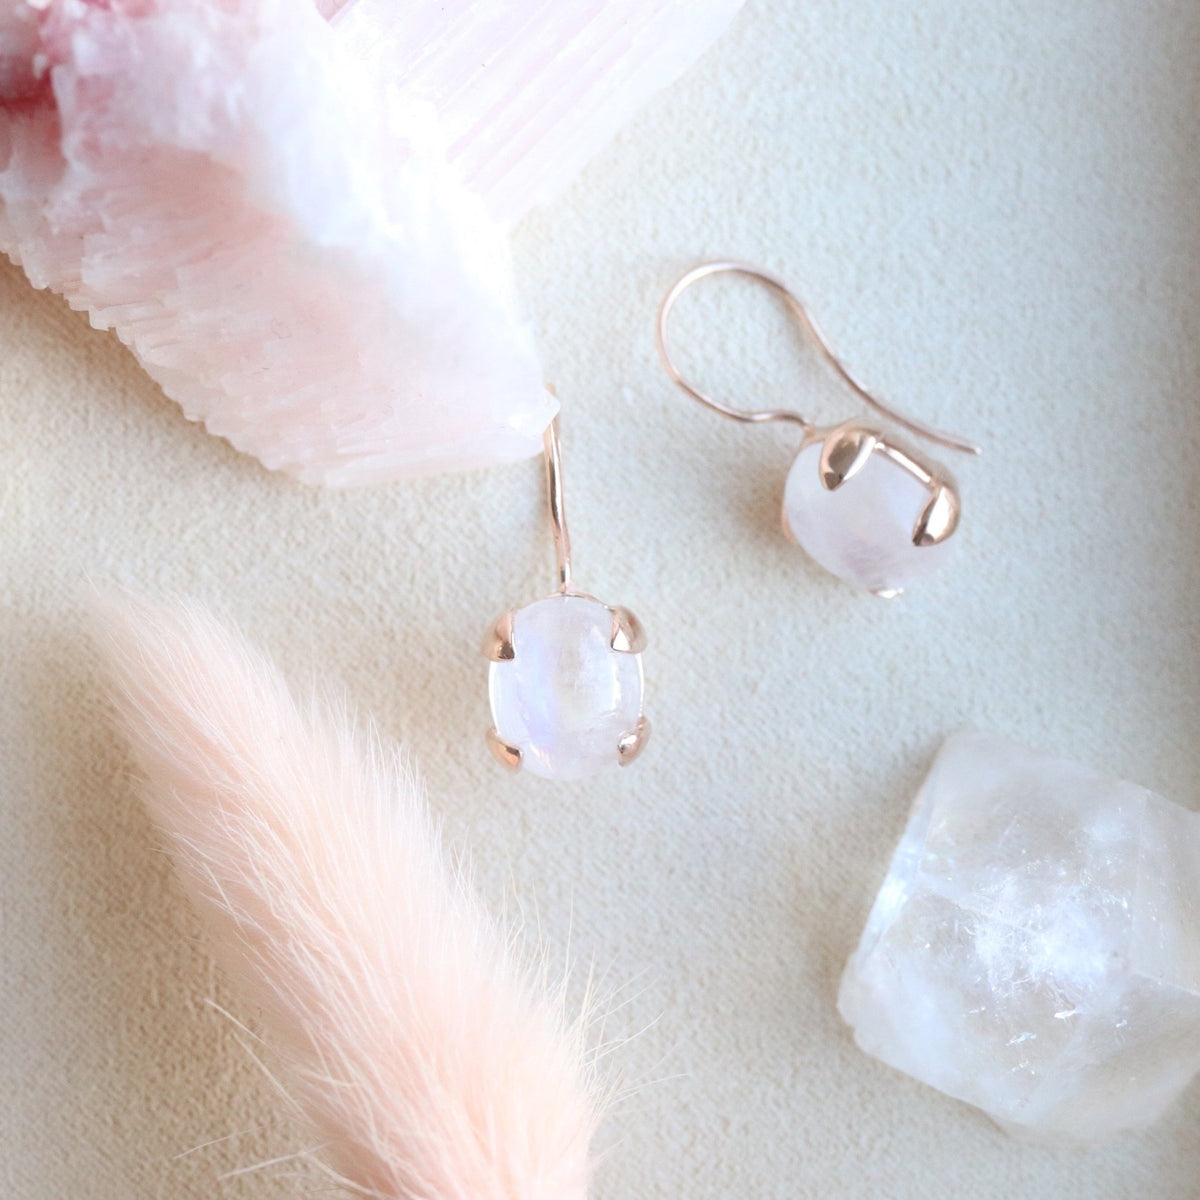 GLEE DROP EARRINGS - RAINBOW MOONSTONE & ROSE GOLD - SO PRETTY CARA COTTER